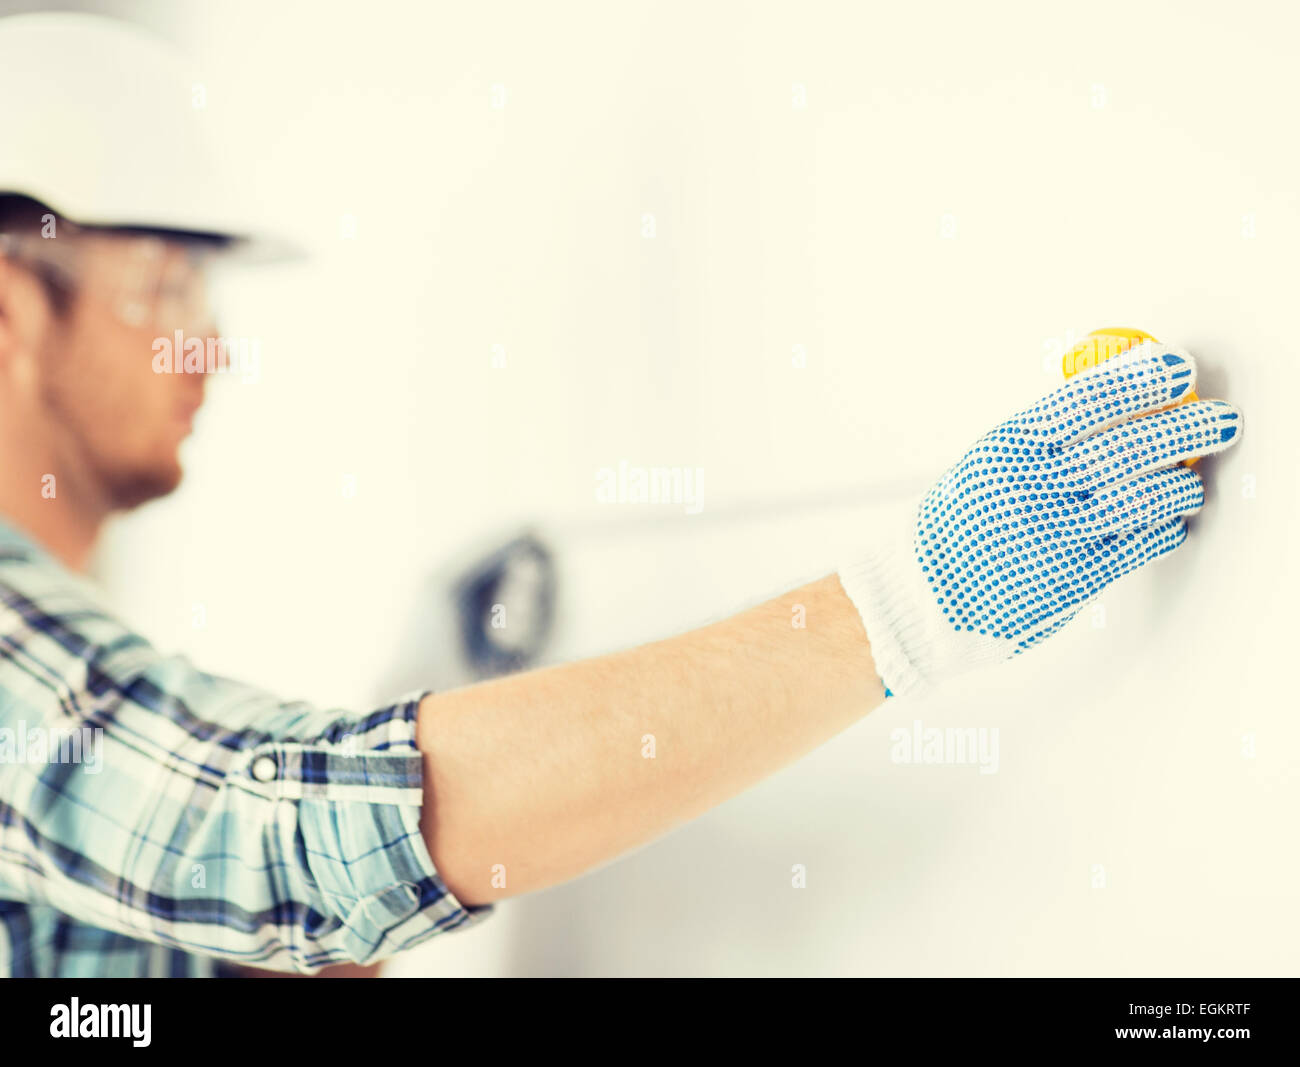 architect measuring wall with flexible ruler - Stock Image